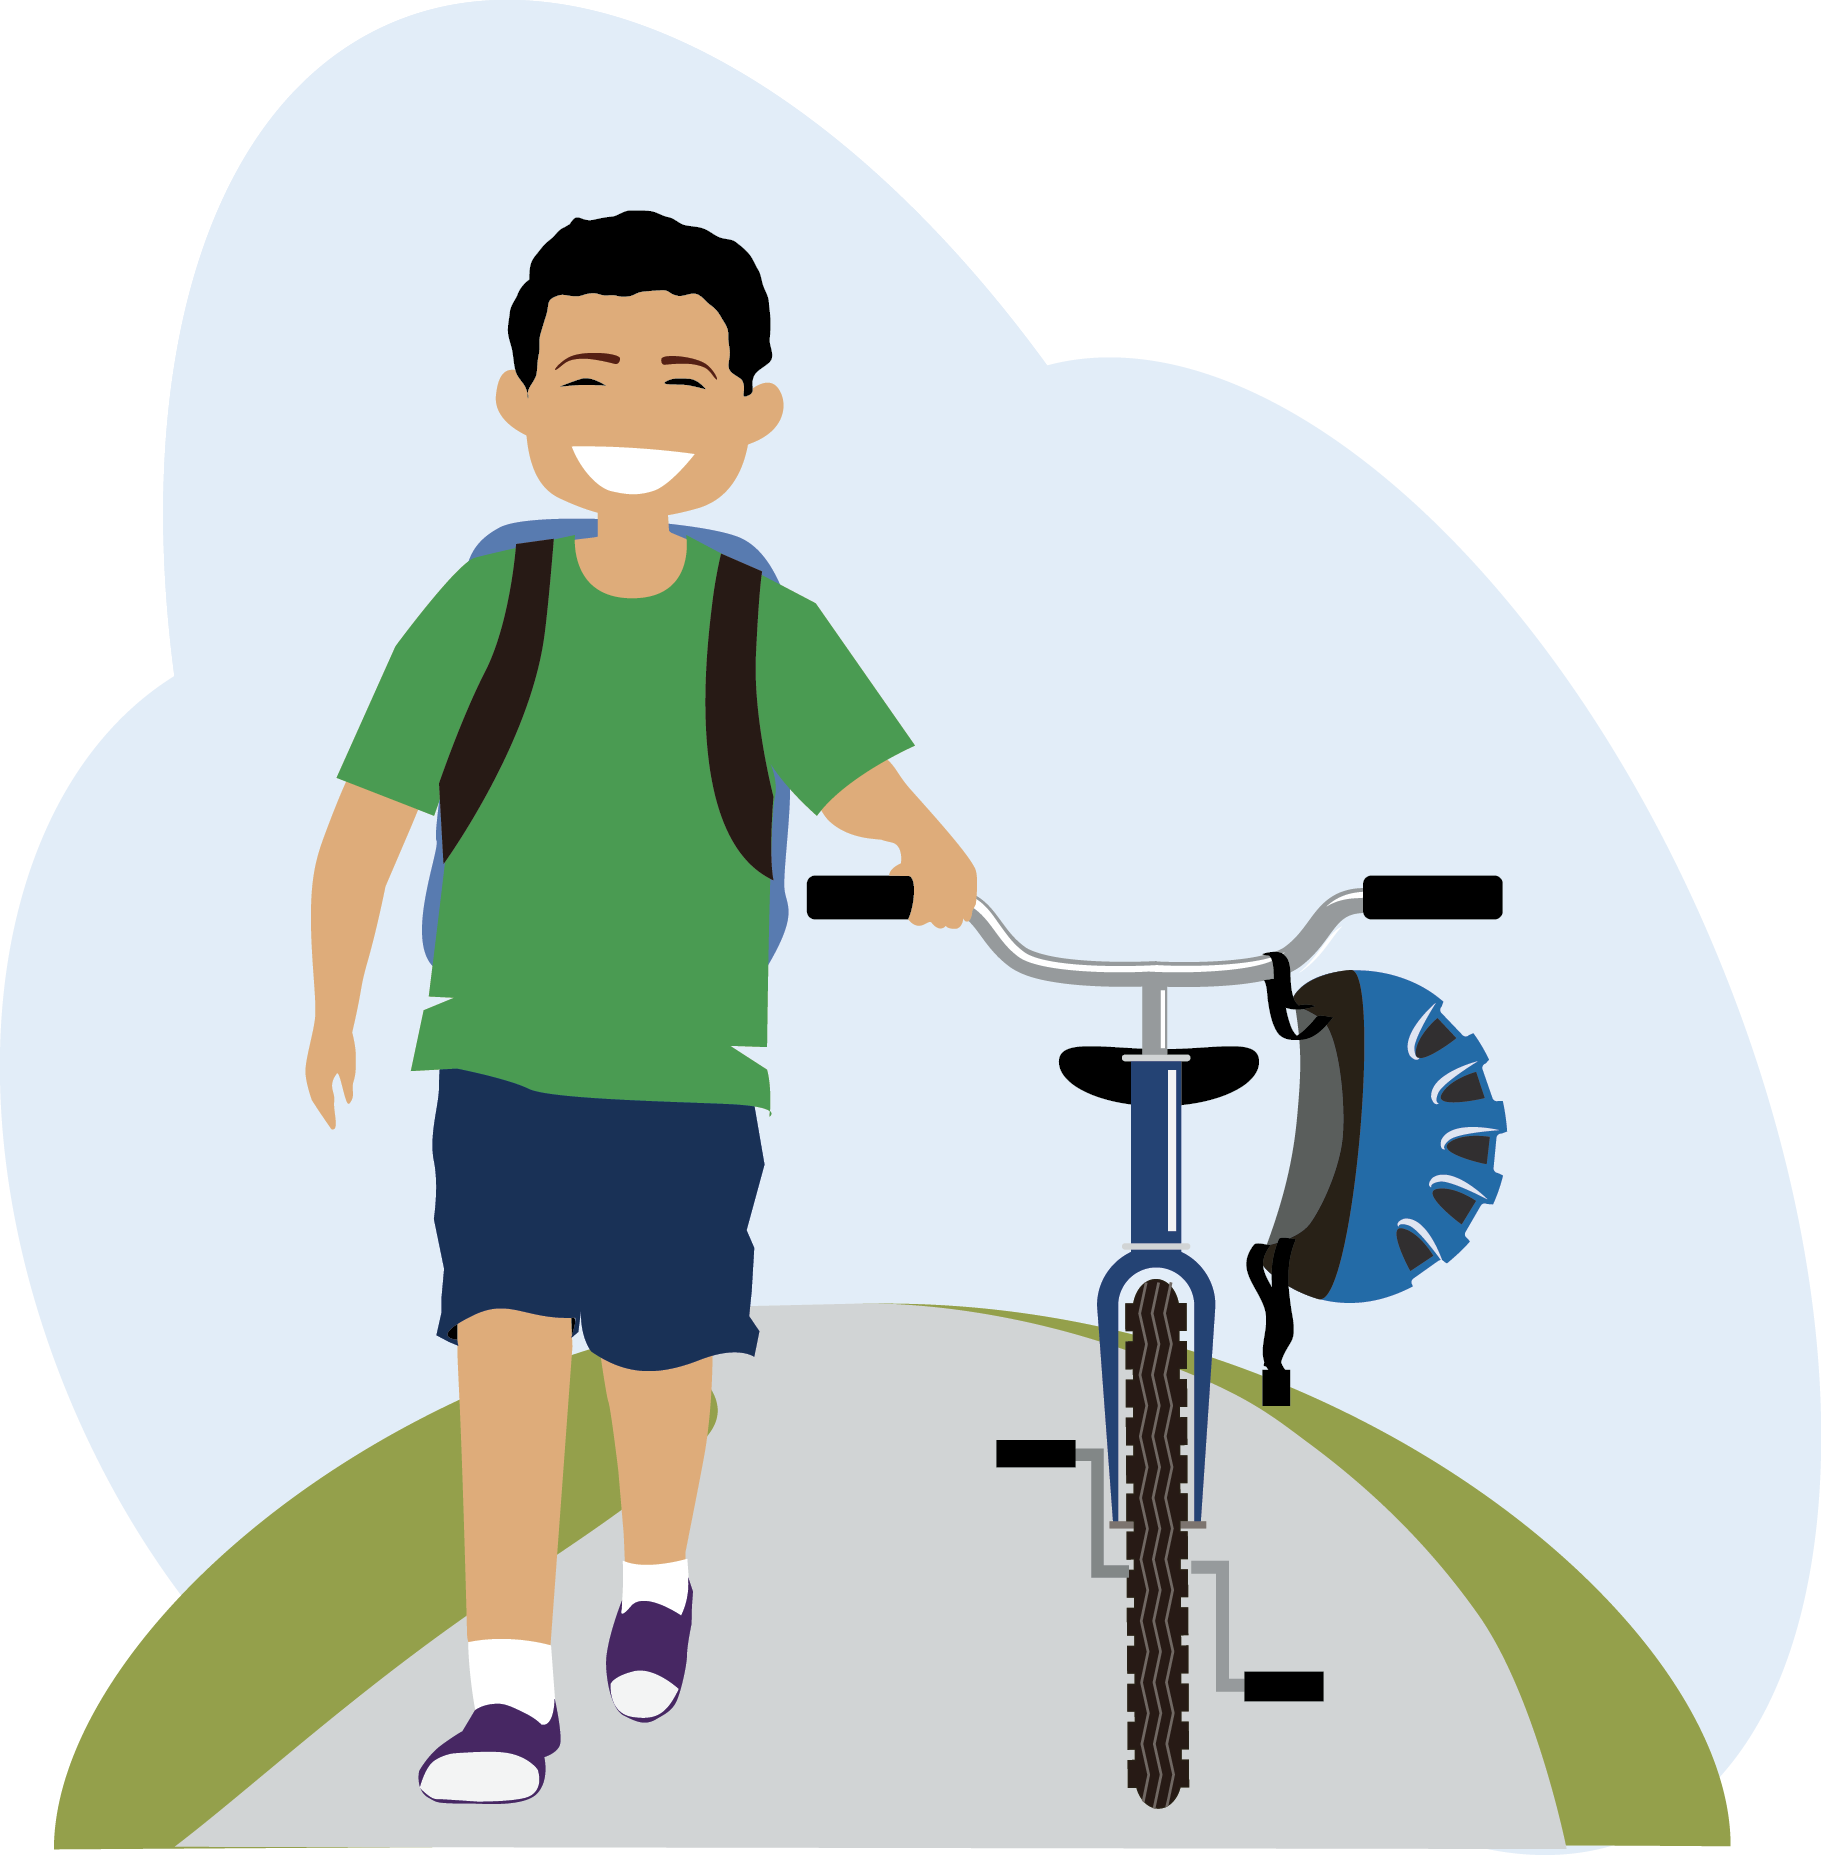 Access for and biking. Clipart walking skip